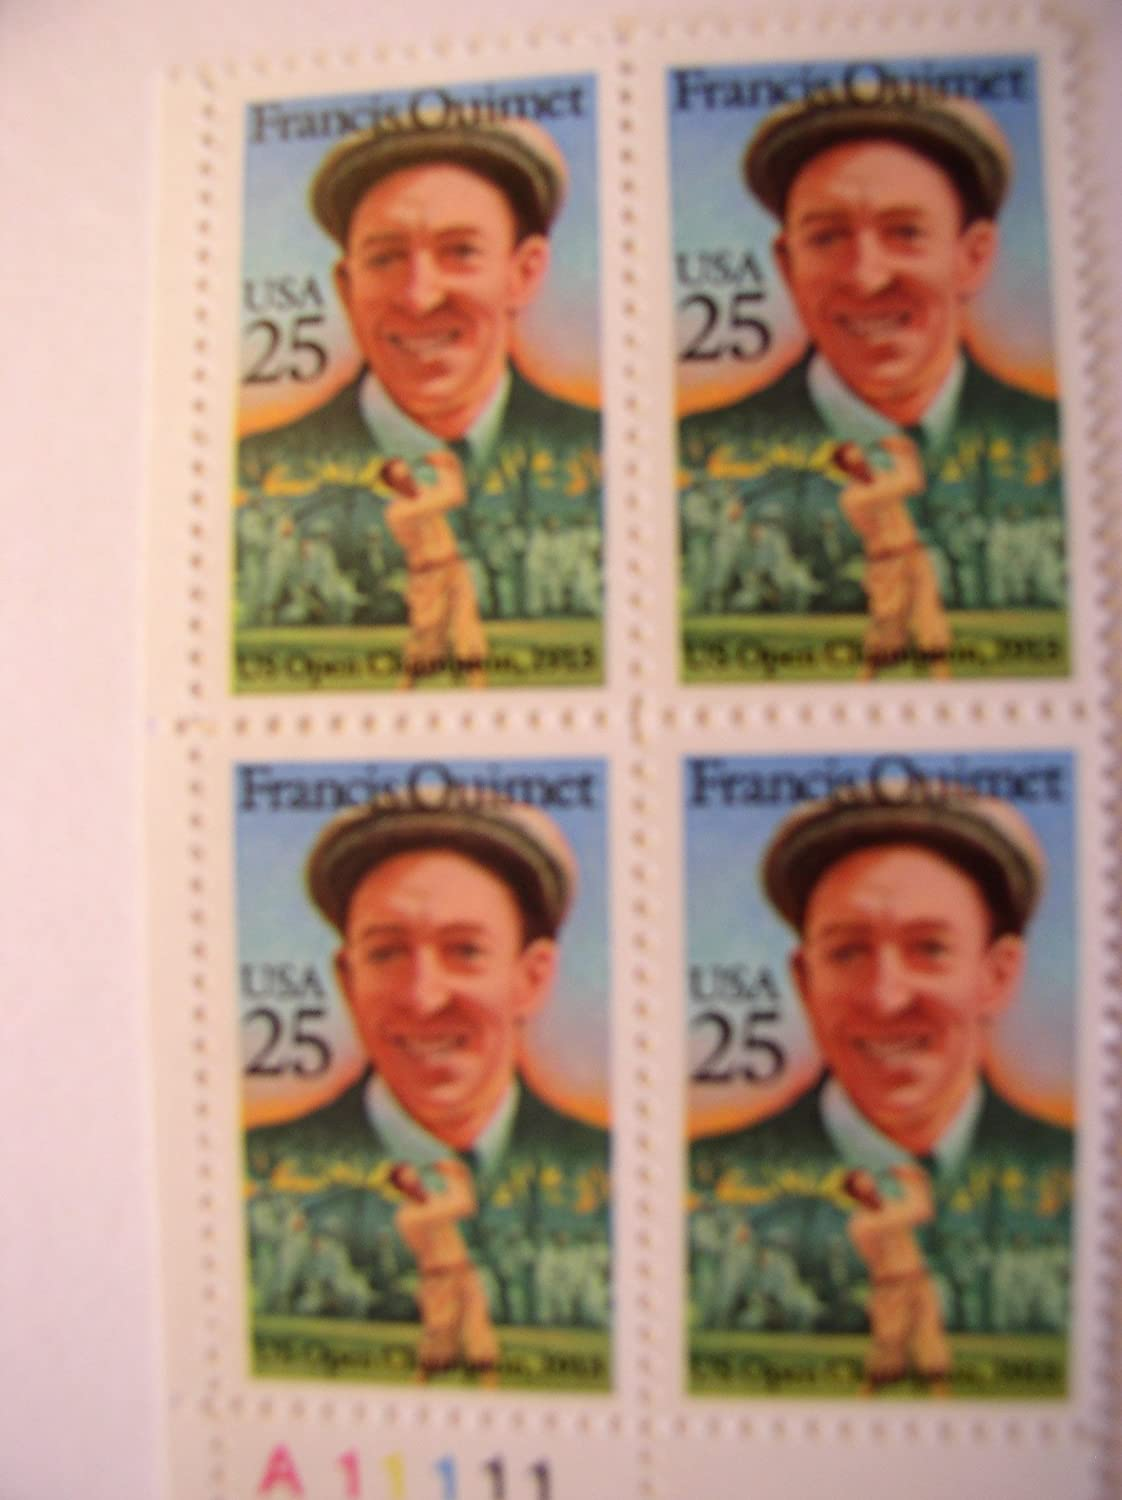 MNH US Postage Stamps Plate Block of 4 25 Cent Stamps Francis Quimet 1988 S# 2377